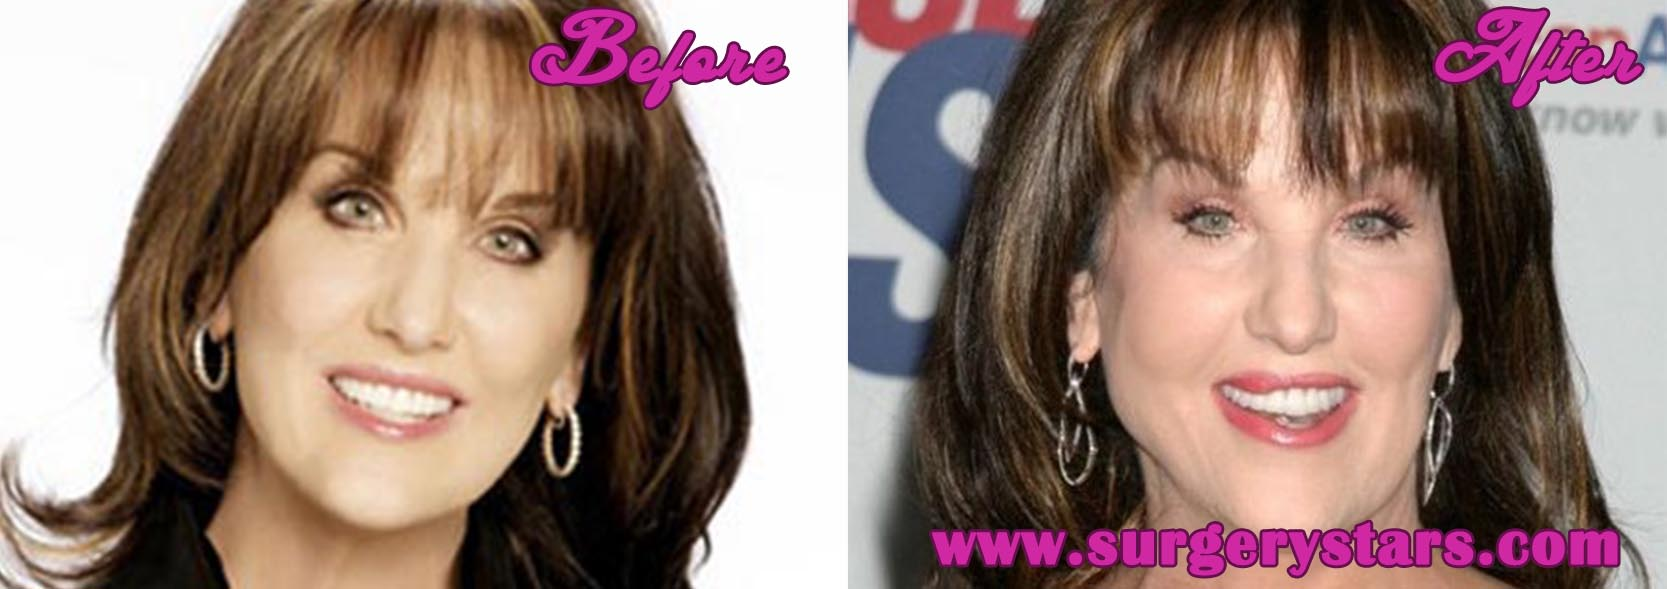 legal age for plastic surgery USA photo - 1